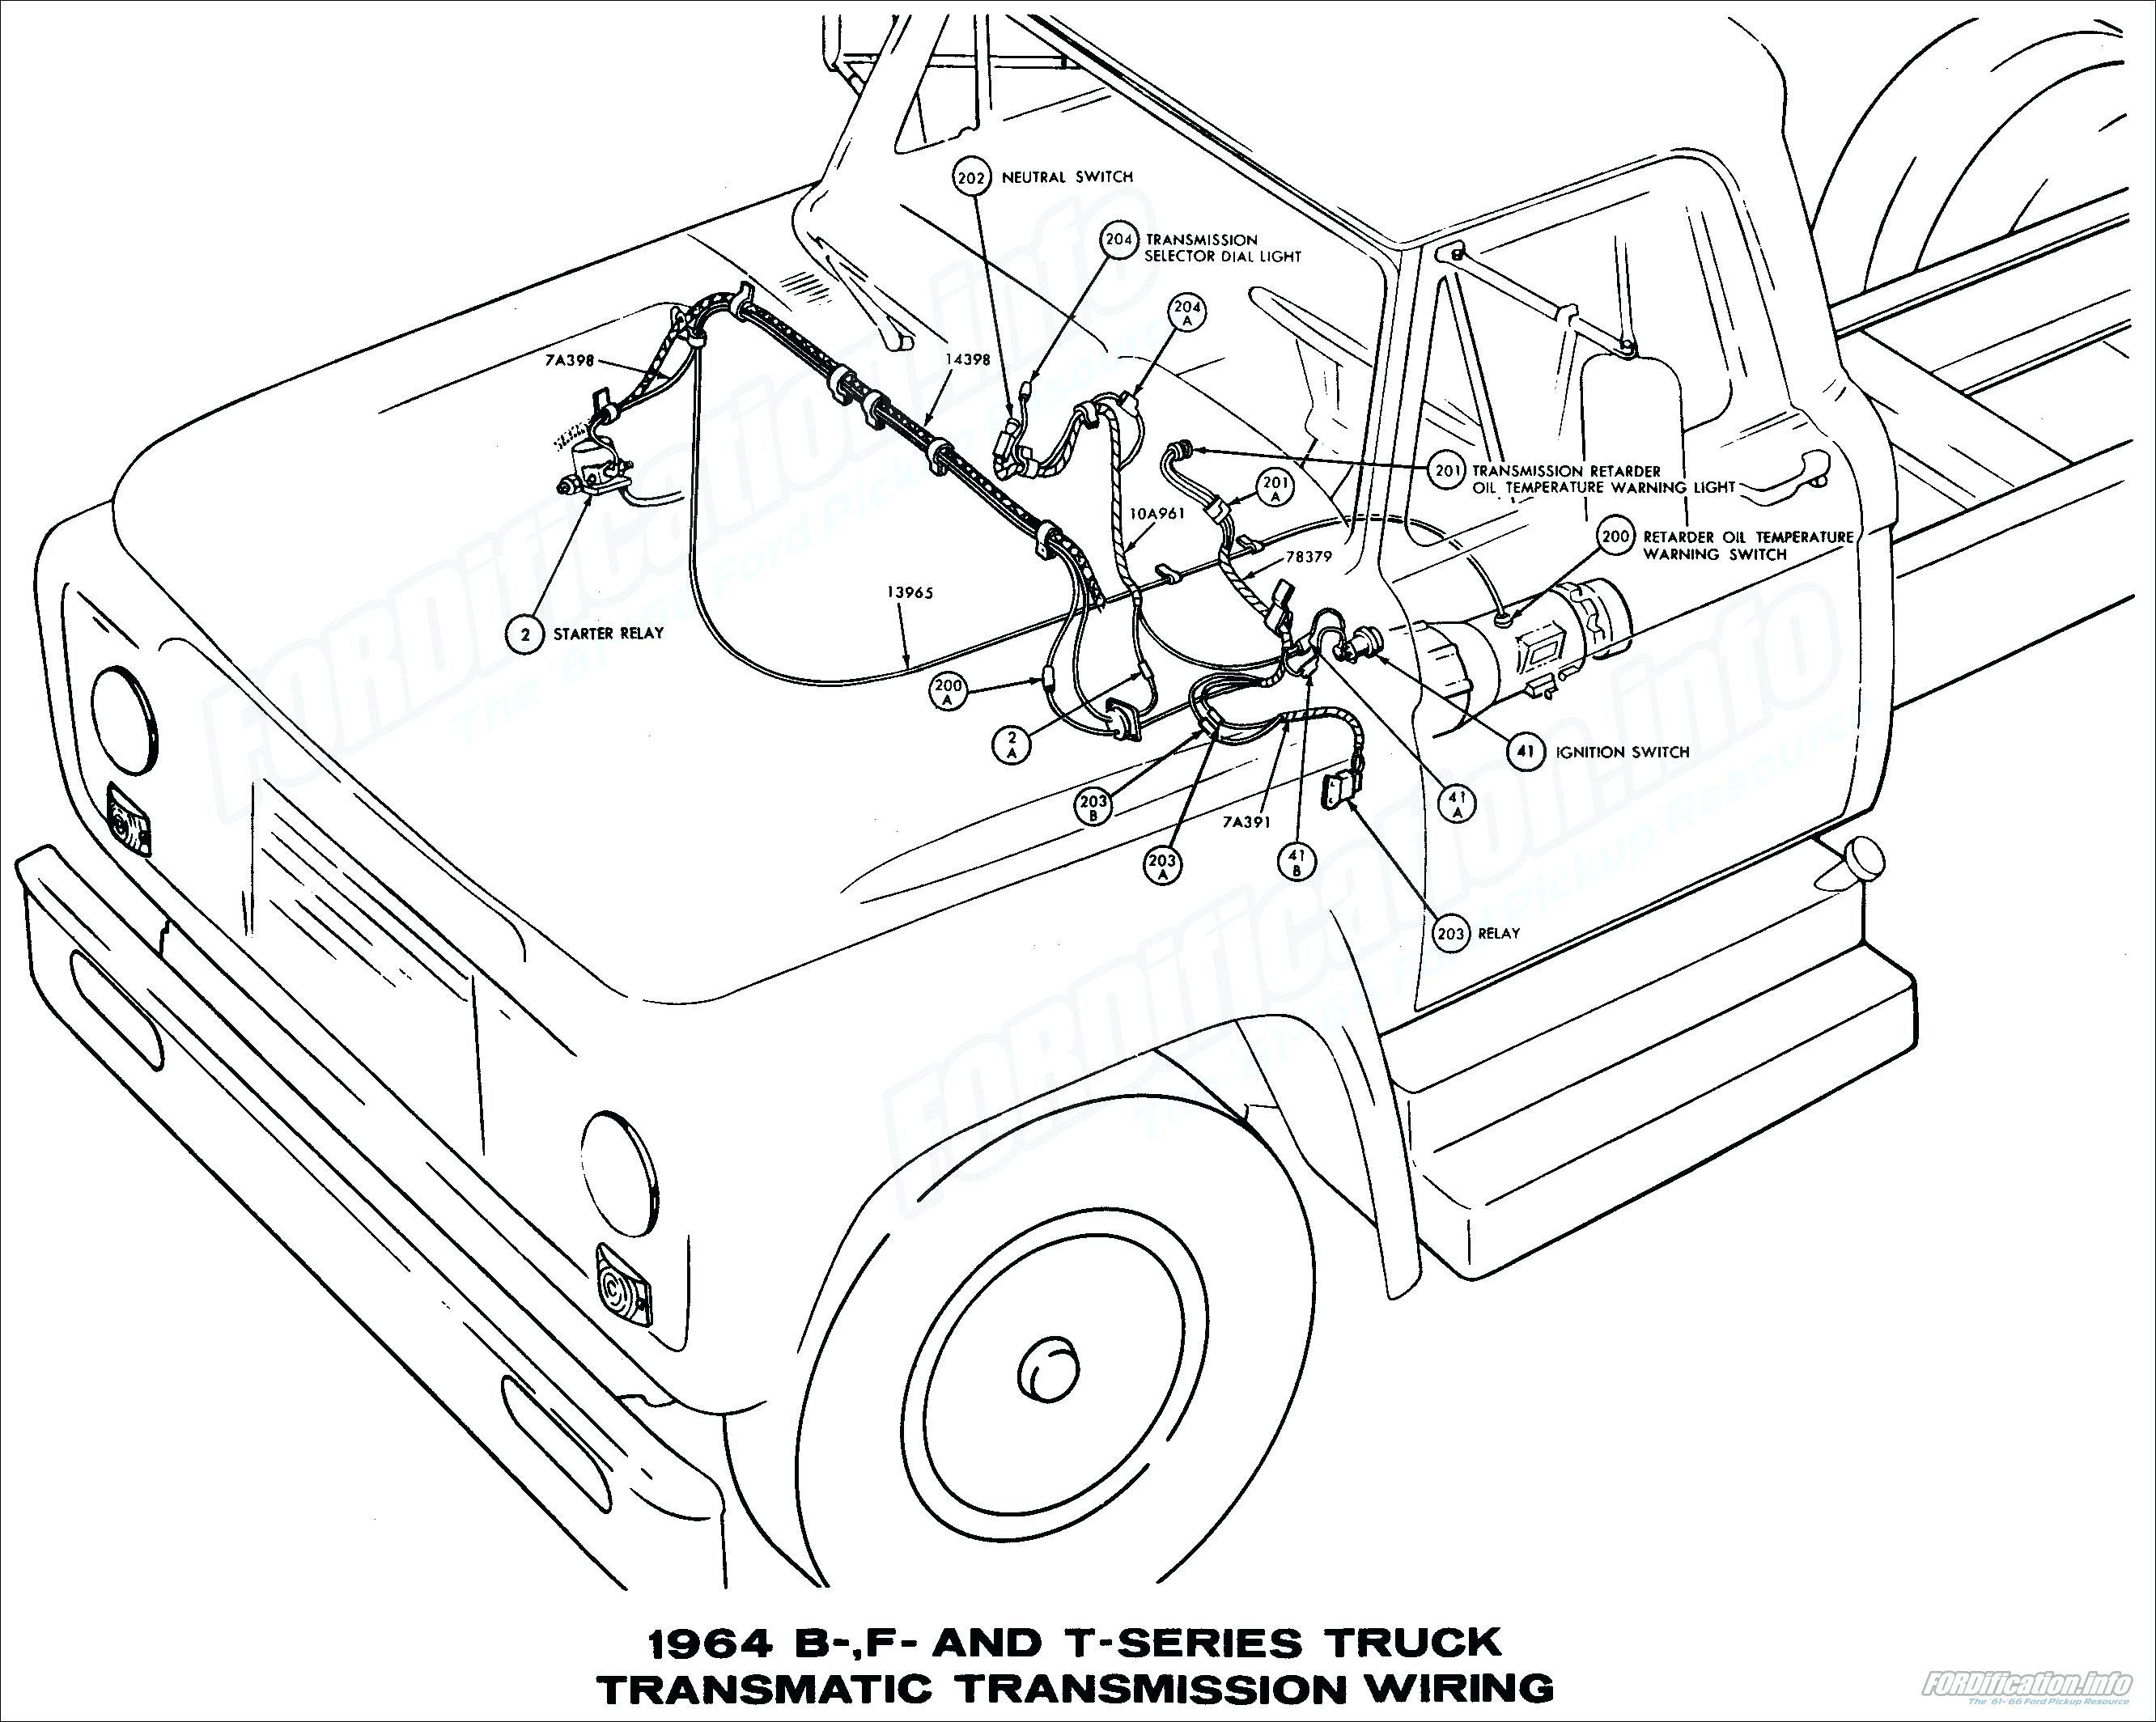 Ford Truck Drawing At Getdrawings Com Free For Personal